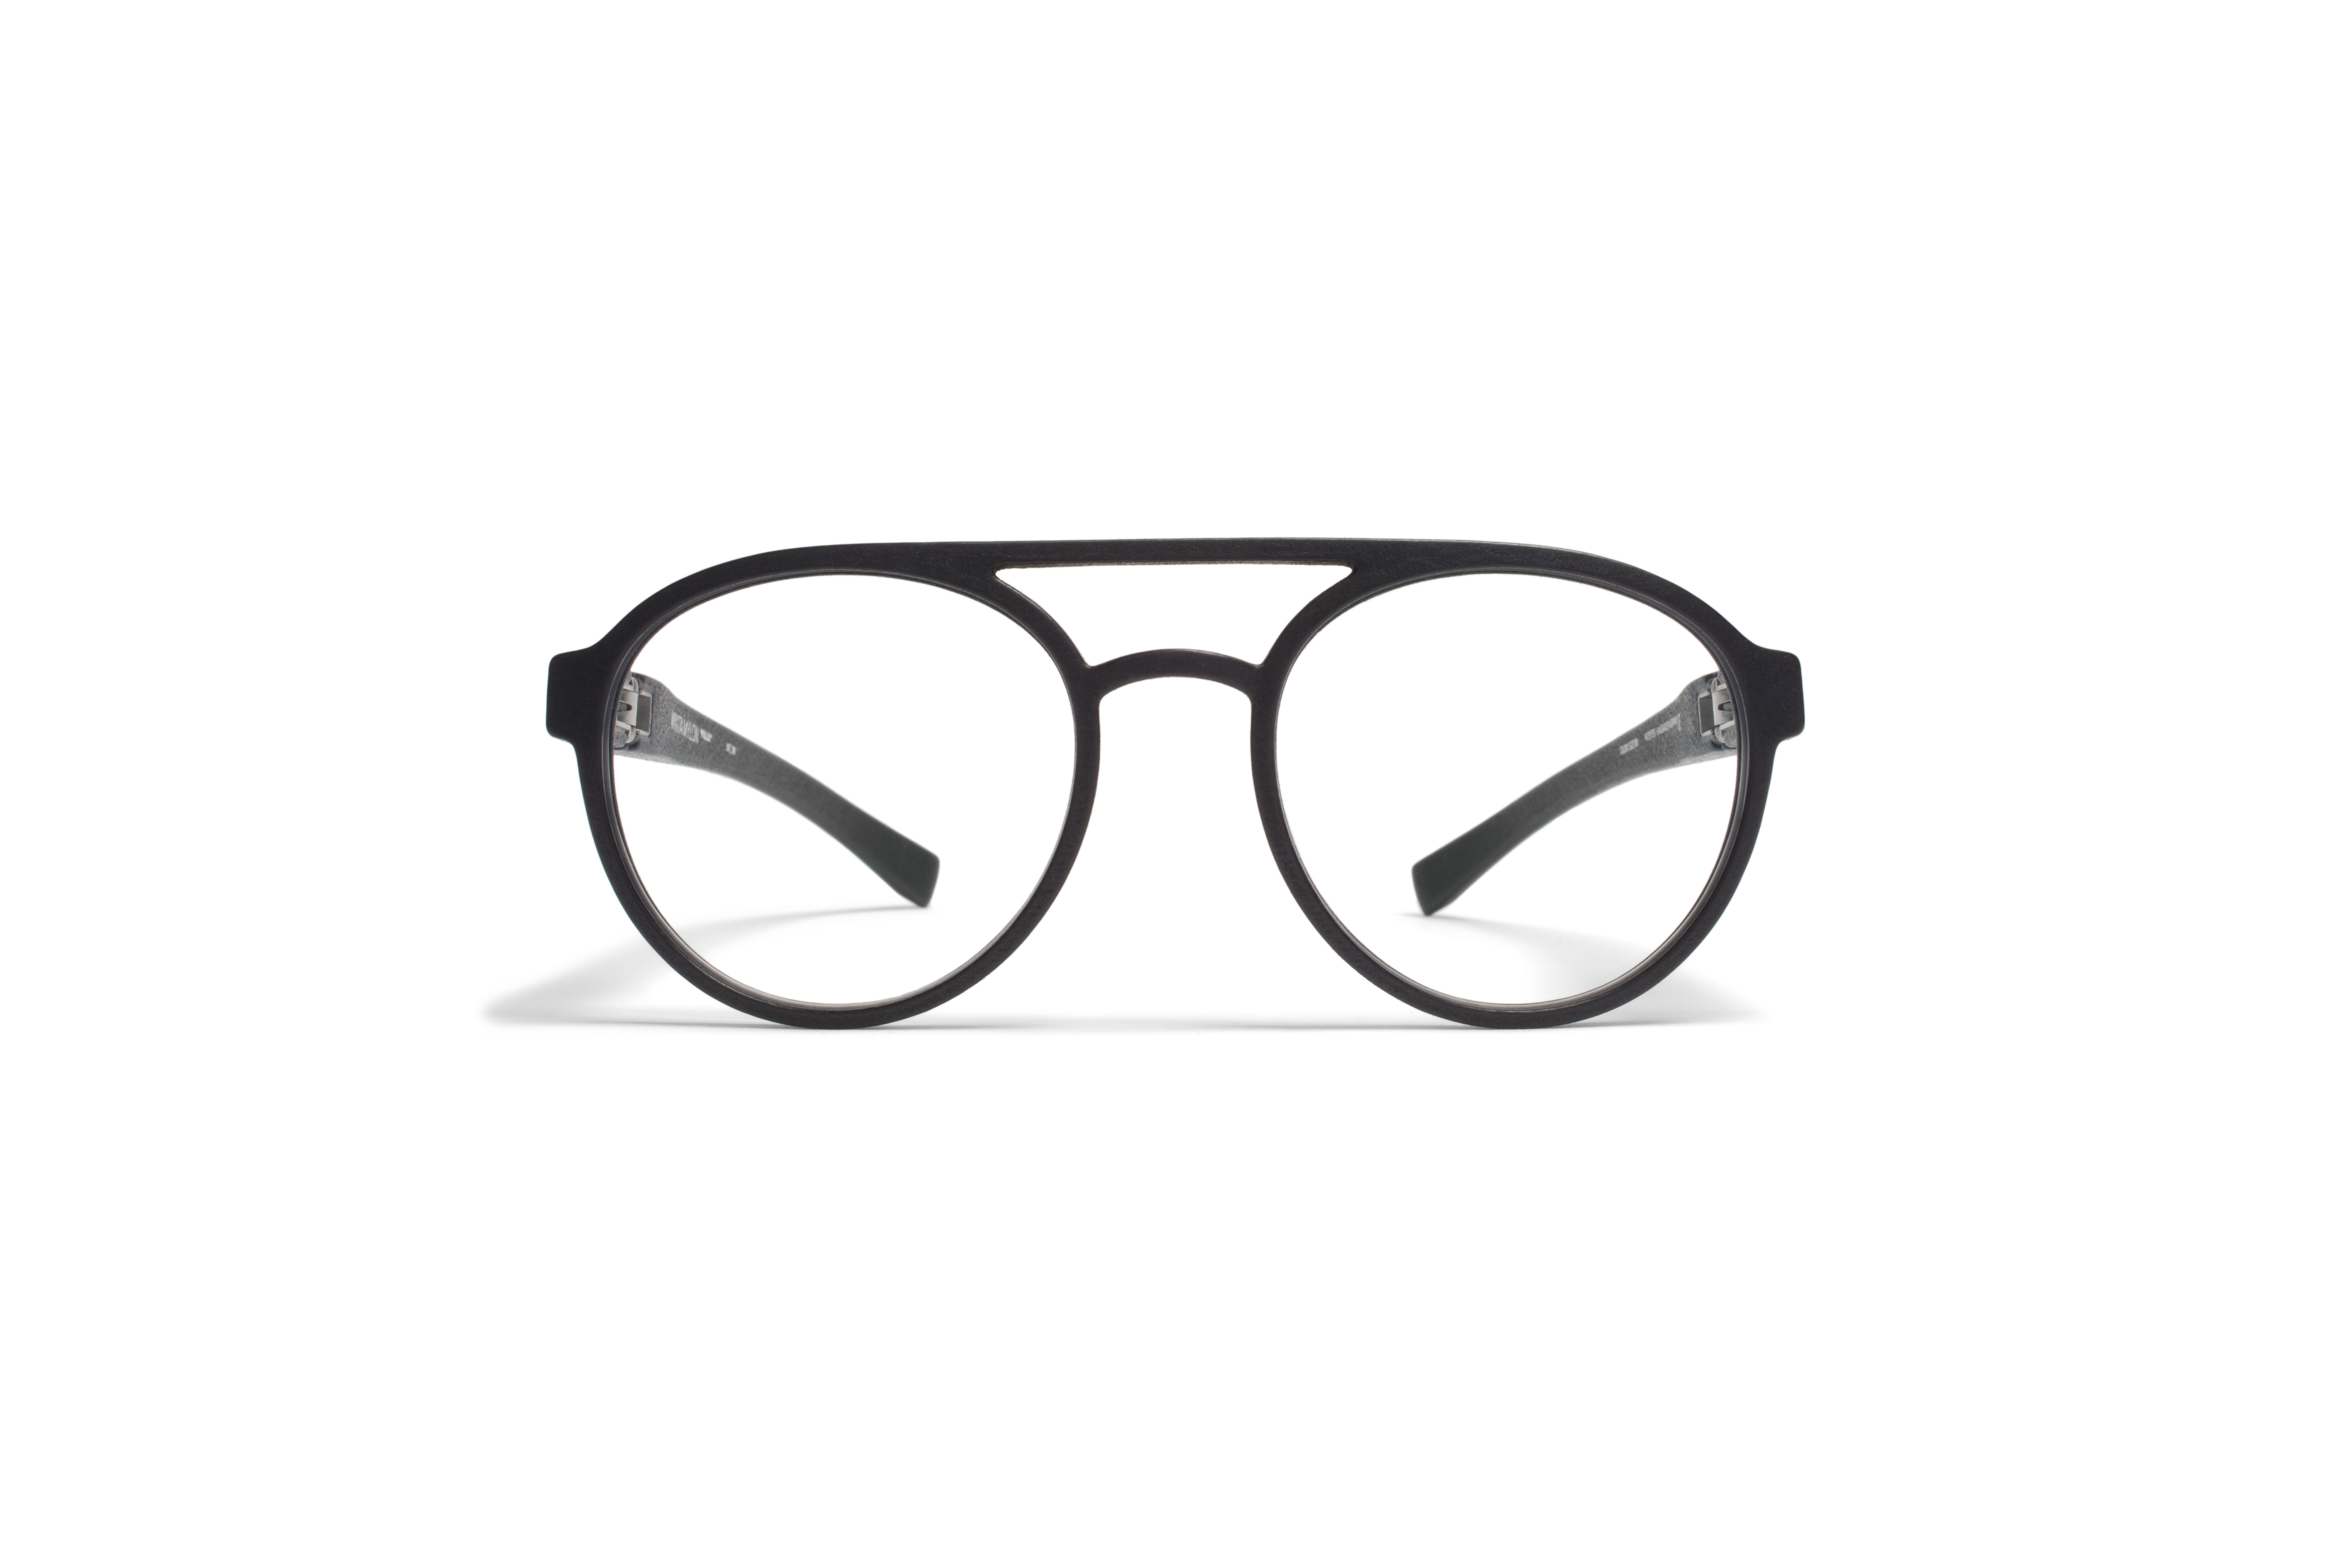 Mykita Mylon Rx Pollux Md1 Pitch Black Clear 35020553137e98e215